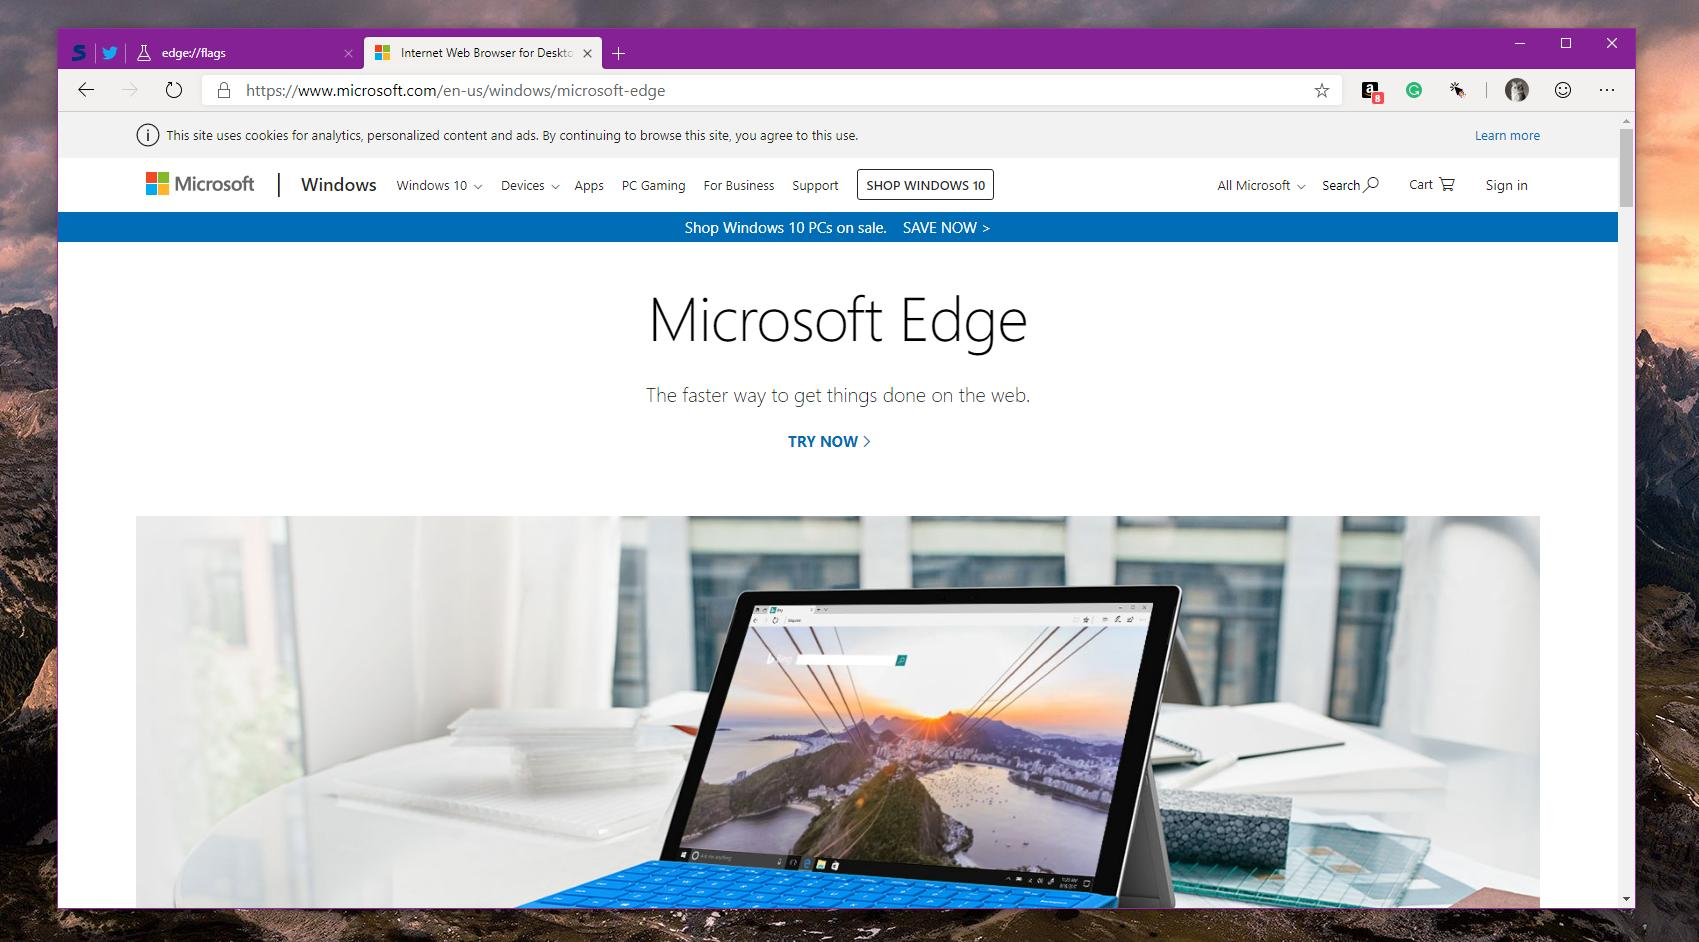 How to Enable Chromecast Support in Chromium Microsoft Edge